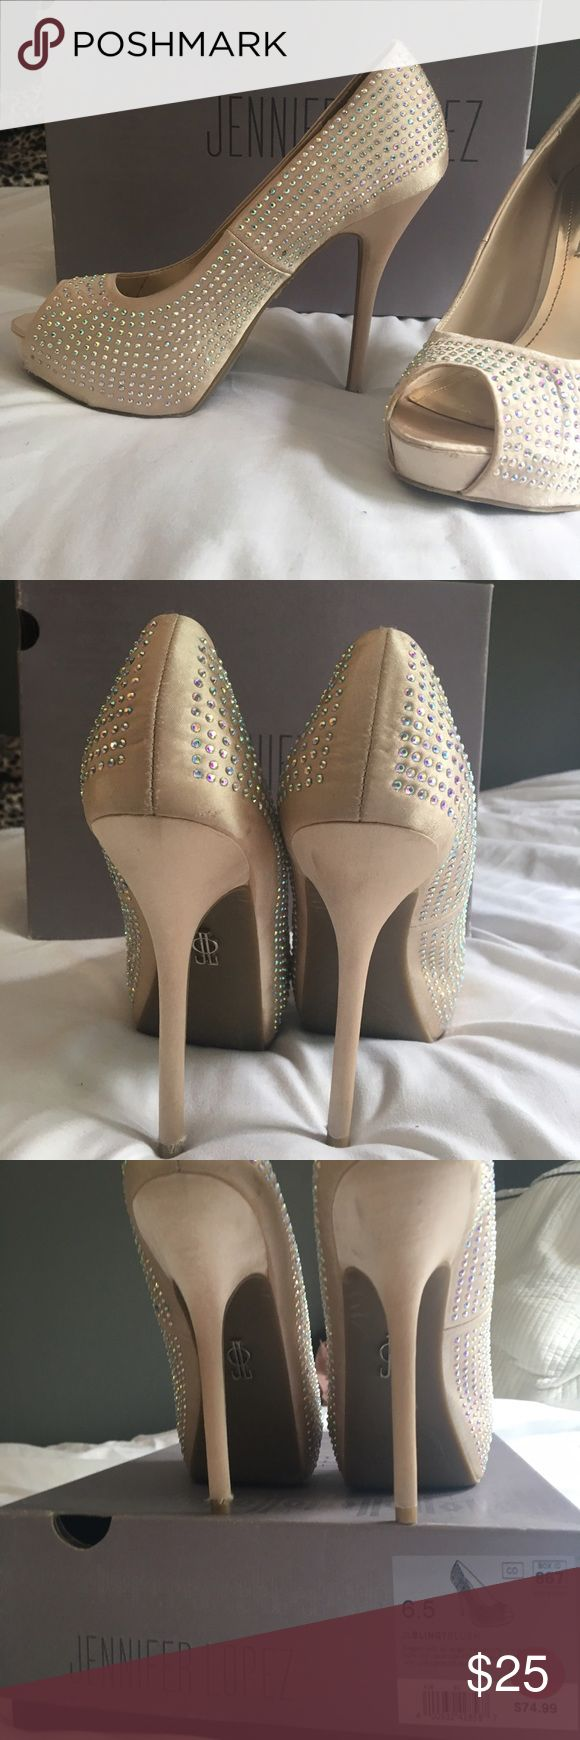 CREAM JEWLED PUMPS👡🥂 Need some cute heels for a wedding? Prom? Or another night out? BUY THESE! worn once, good condition. Beautiful color that can go with many different dresses. Comfortable too, I danced the whole night without taking my shoes off. Jennifer Lopez Shoes Heels